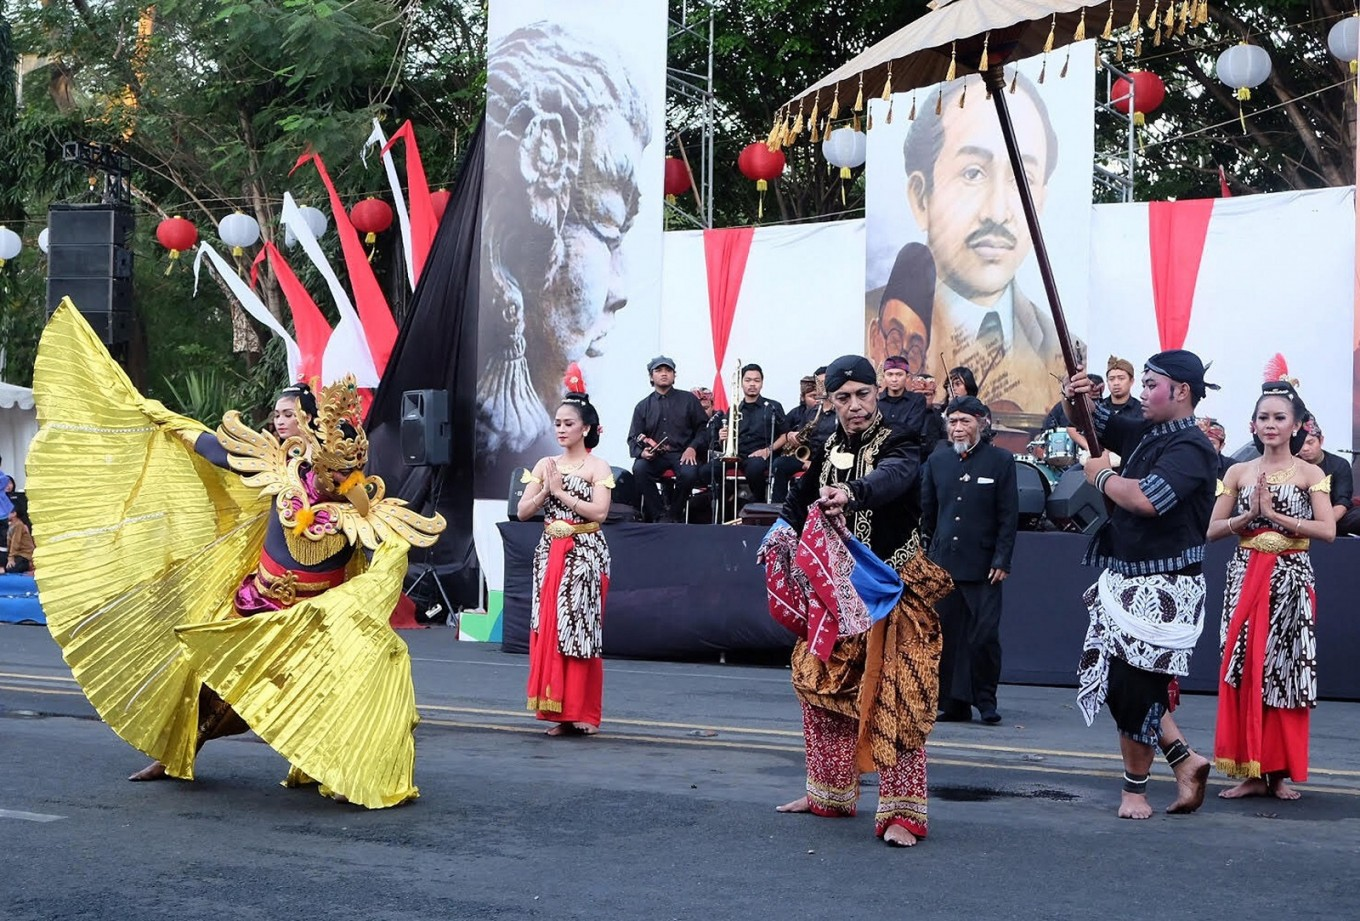 The play marks the peak of the 73rd Independence Day celebration in Surakarta.